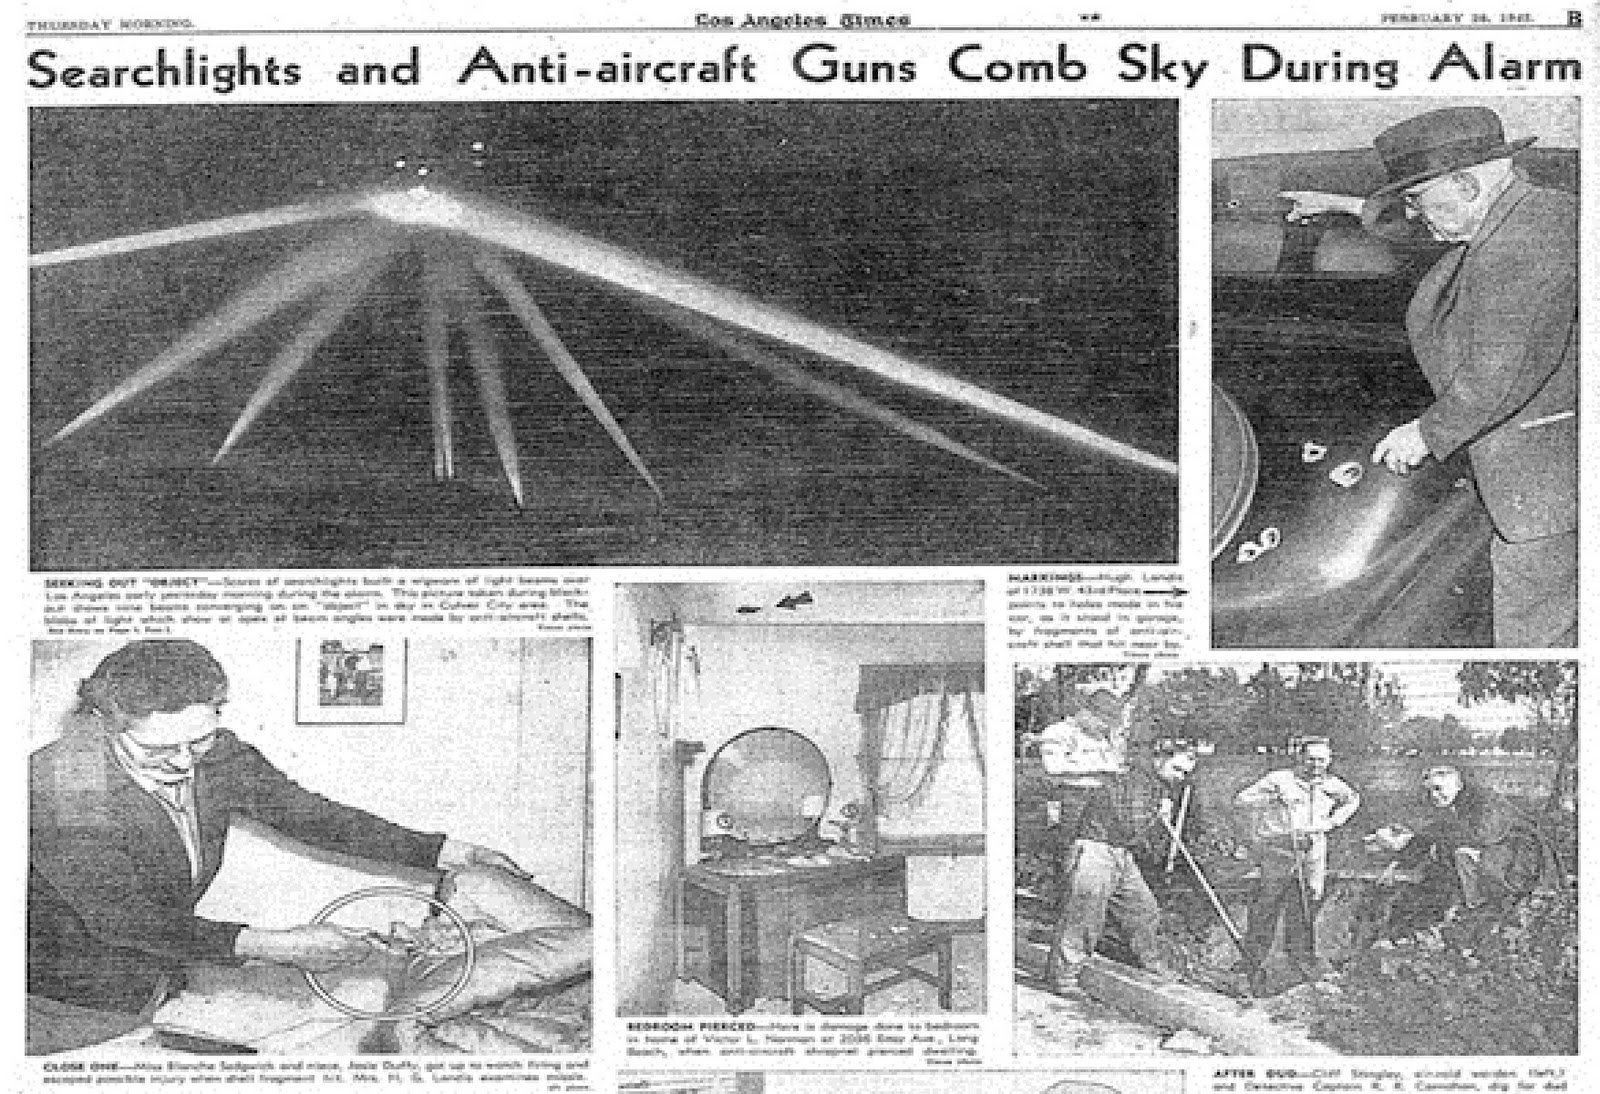 26feb42-los-angeles-times-los-angeles-air-raid